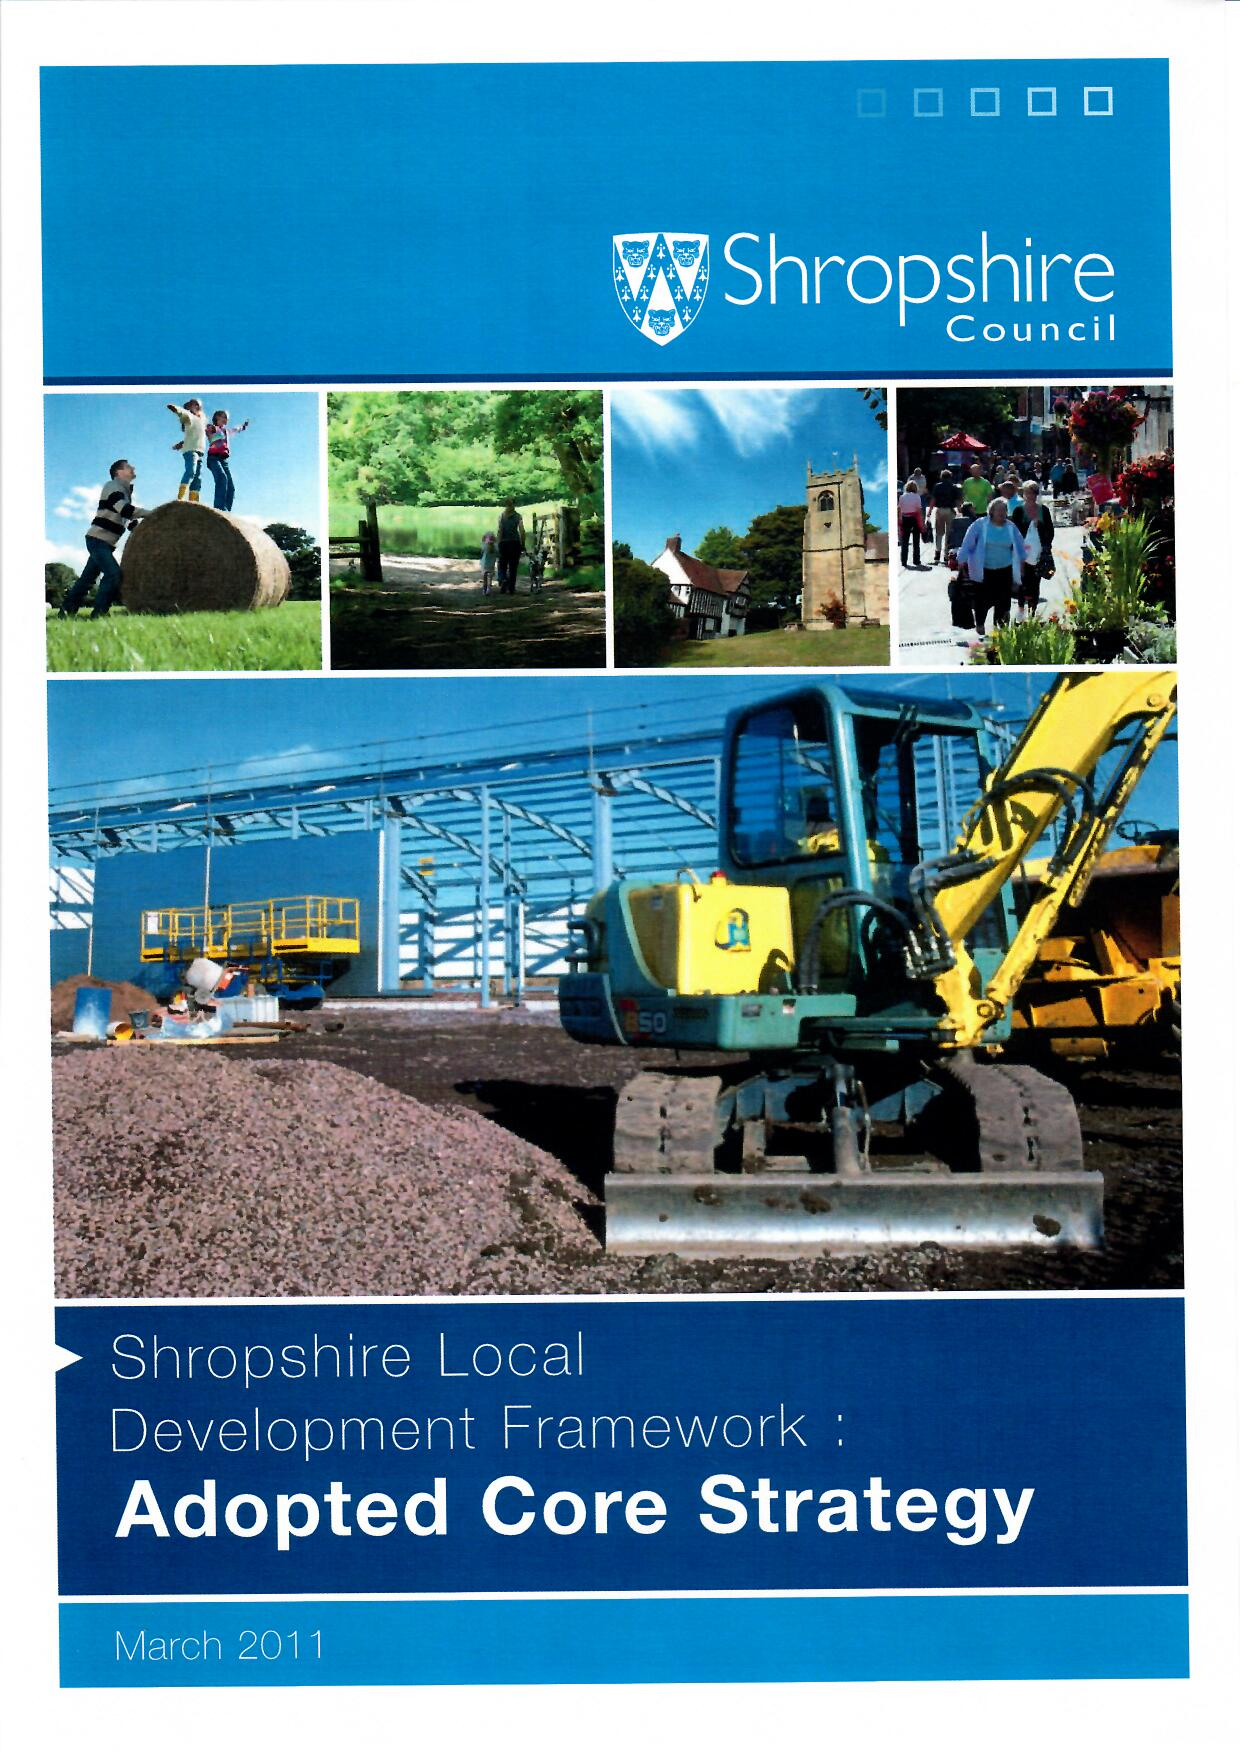 Shropshire Council's Adopted Core Strategy